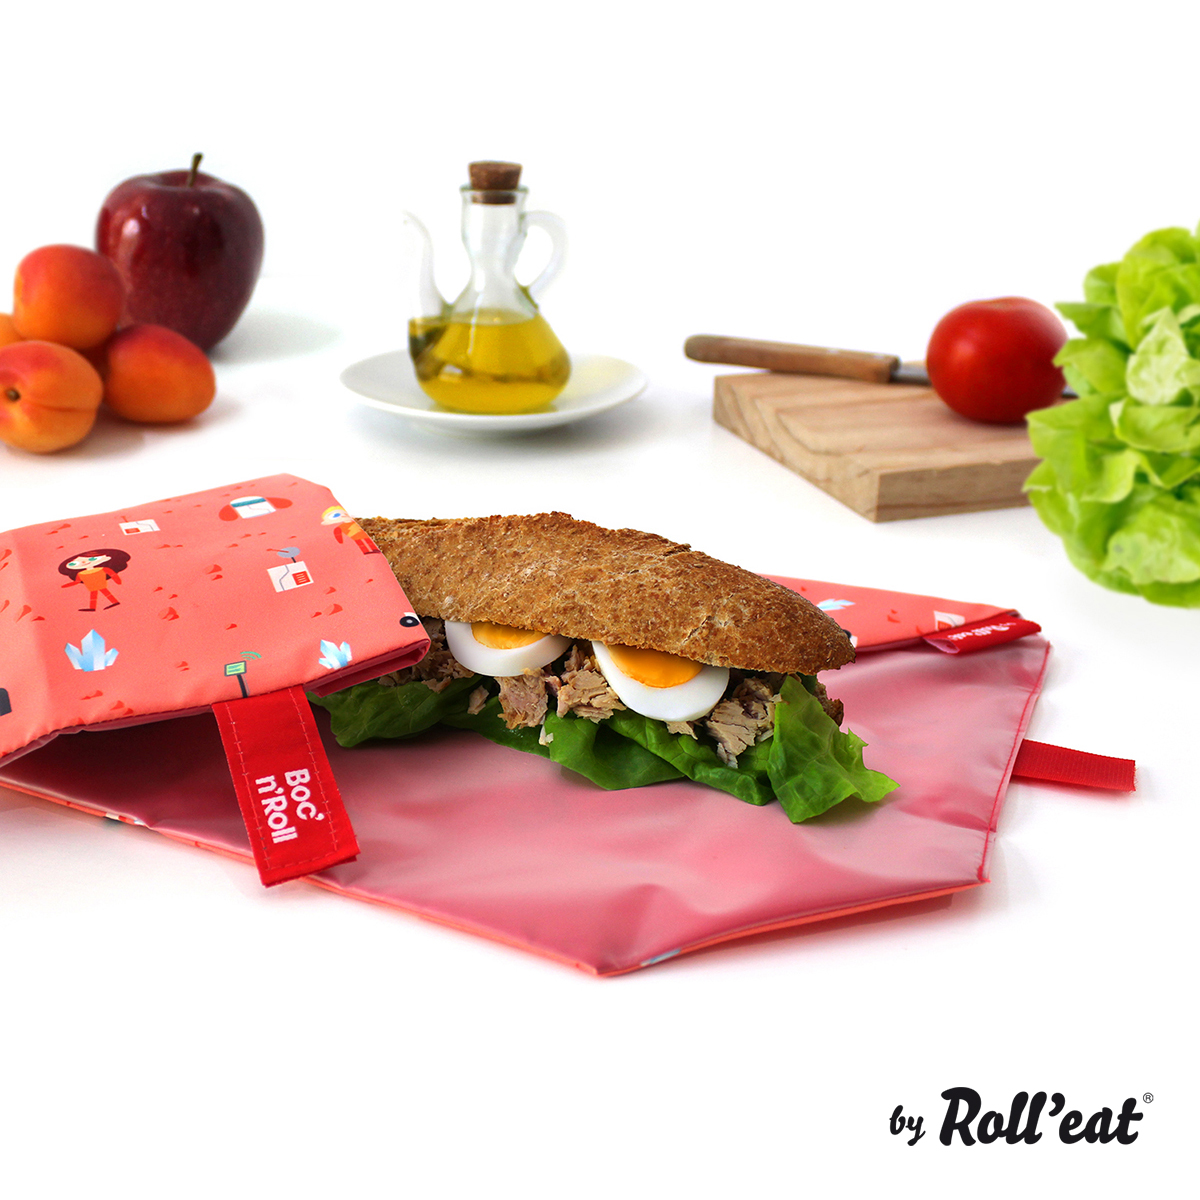 vuelta al cole bocnroll-kids-space-sandwich-rolleat